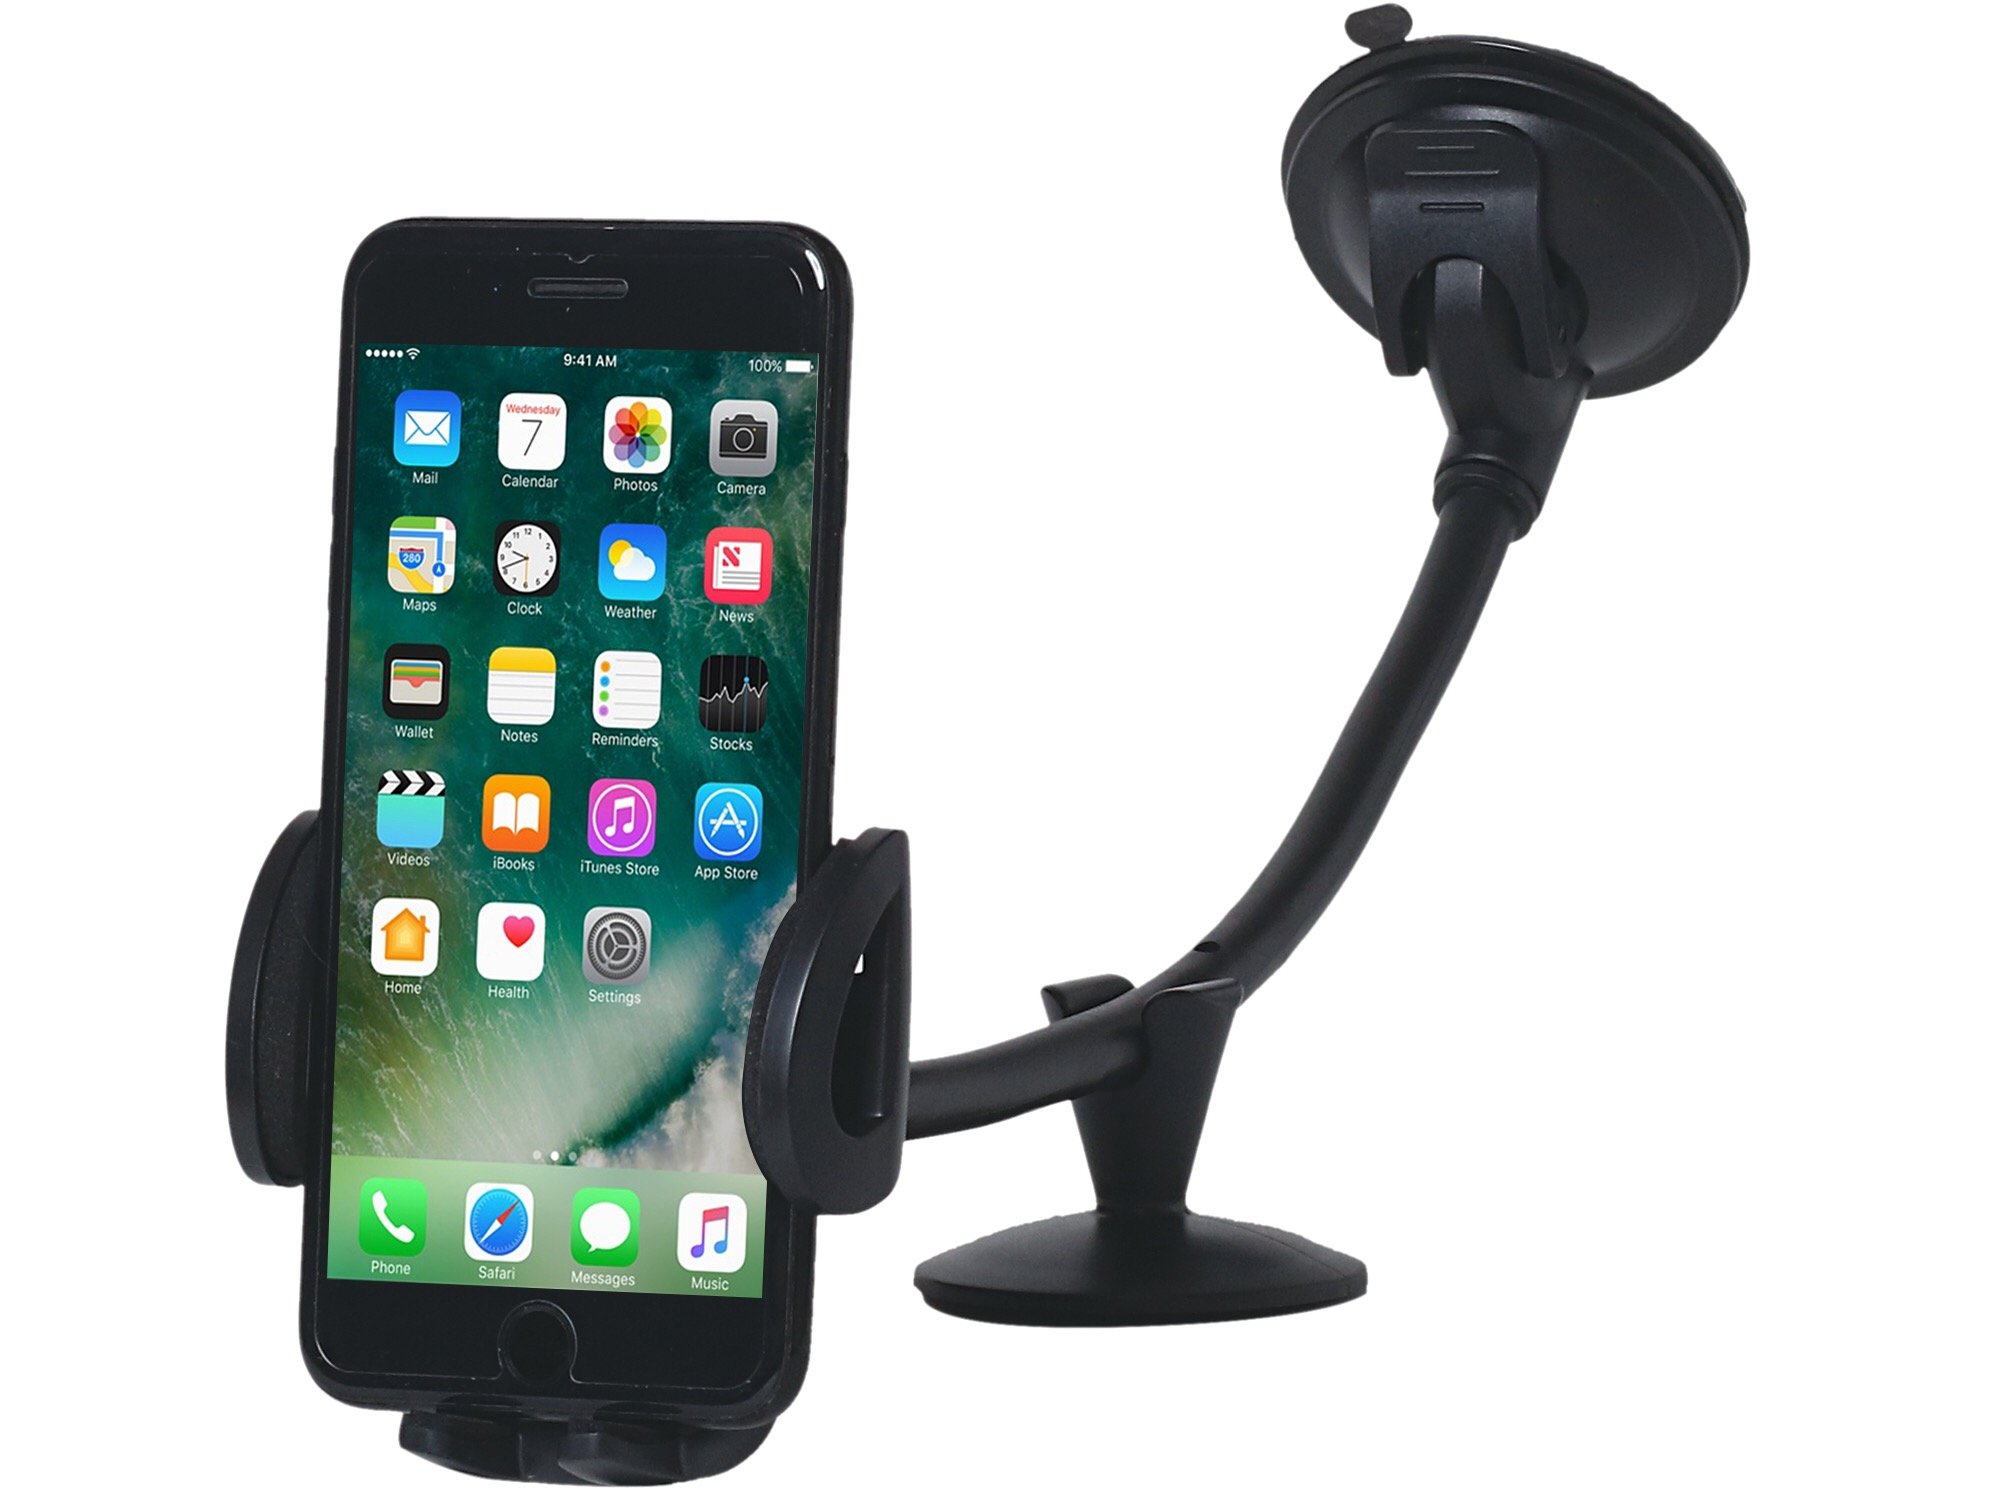 CAR Mount Cell Phone Holder, 13 Inches Long Arm with Anti-skid Base with Strong Suction model 2018 for iPhone 8P/8/7/7P/6s/6P/5S, Galaxy S5/S6/S7/S8, Google, LG, Huawei and More